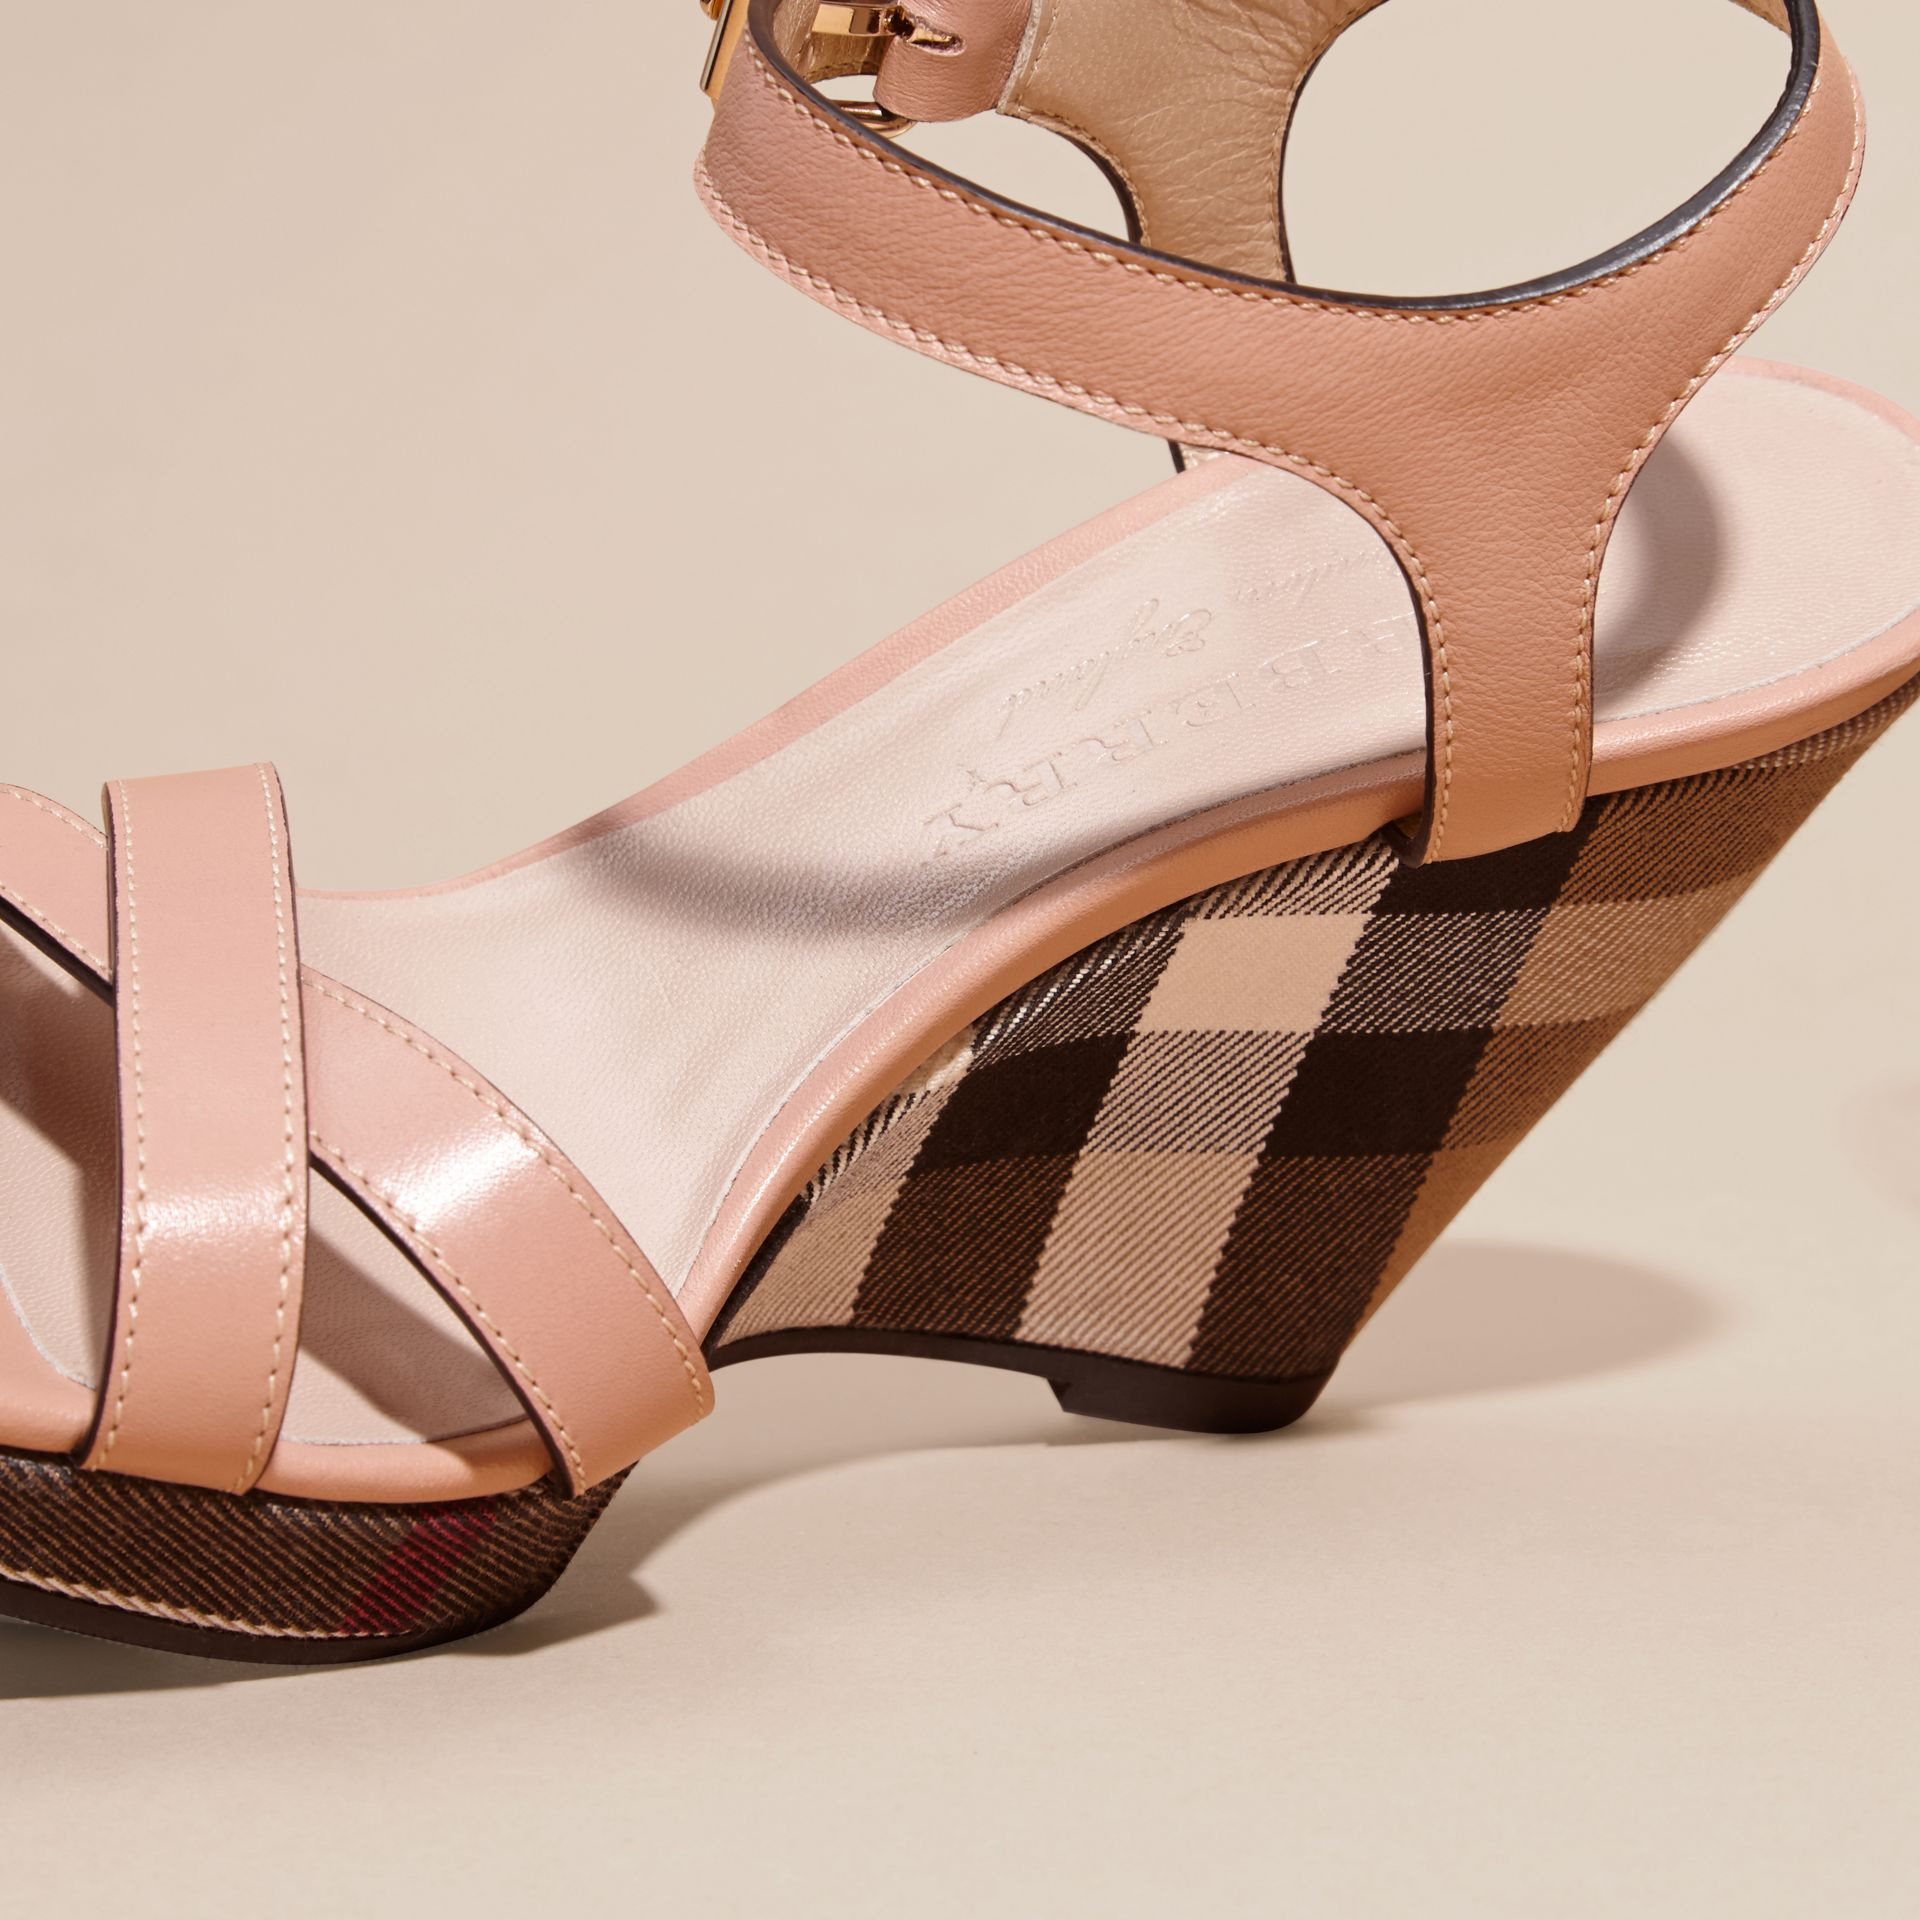 House Check Detail Leather Wedge Sandals in Nude Blush - Women | Burberry - gallery image 5